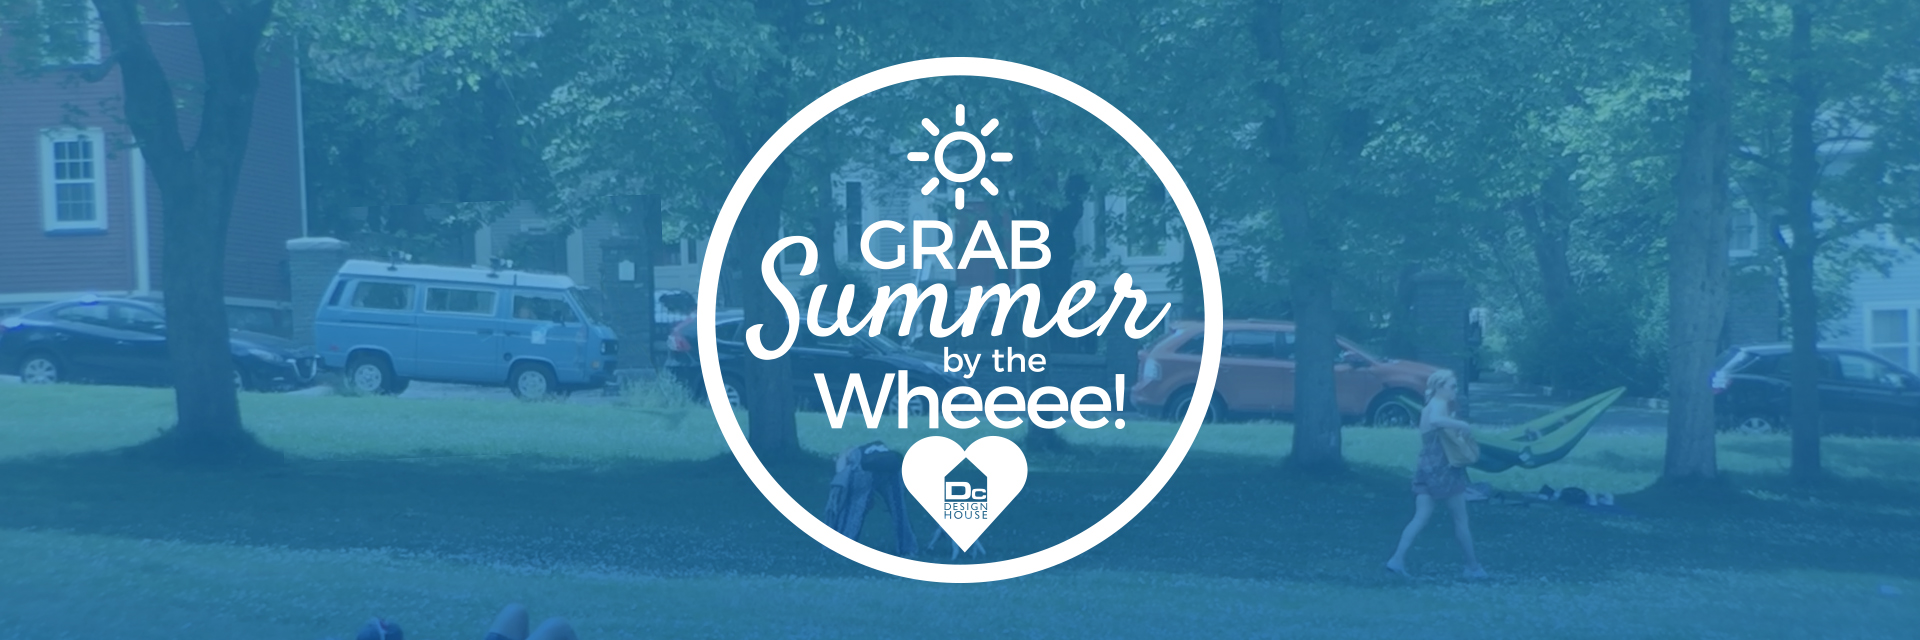 Grab Summer by the Wheeee!